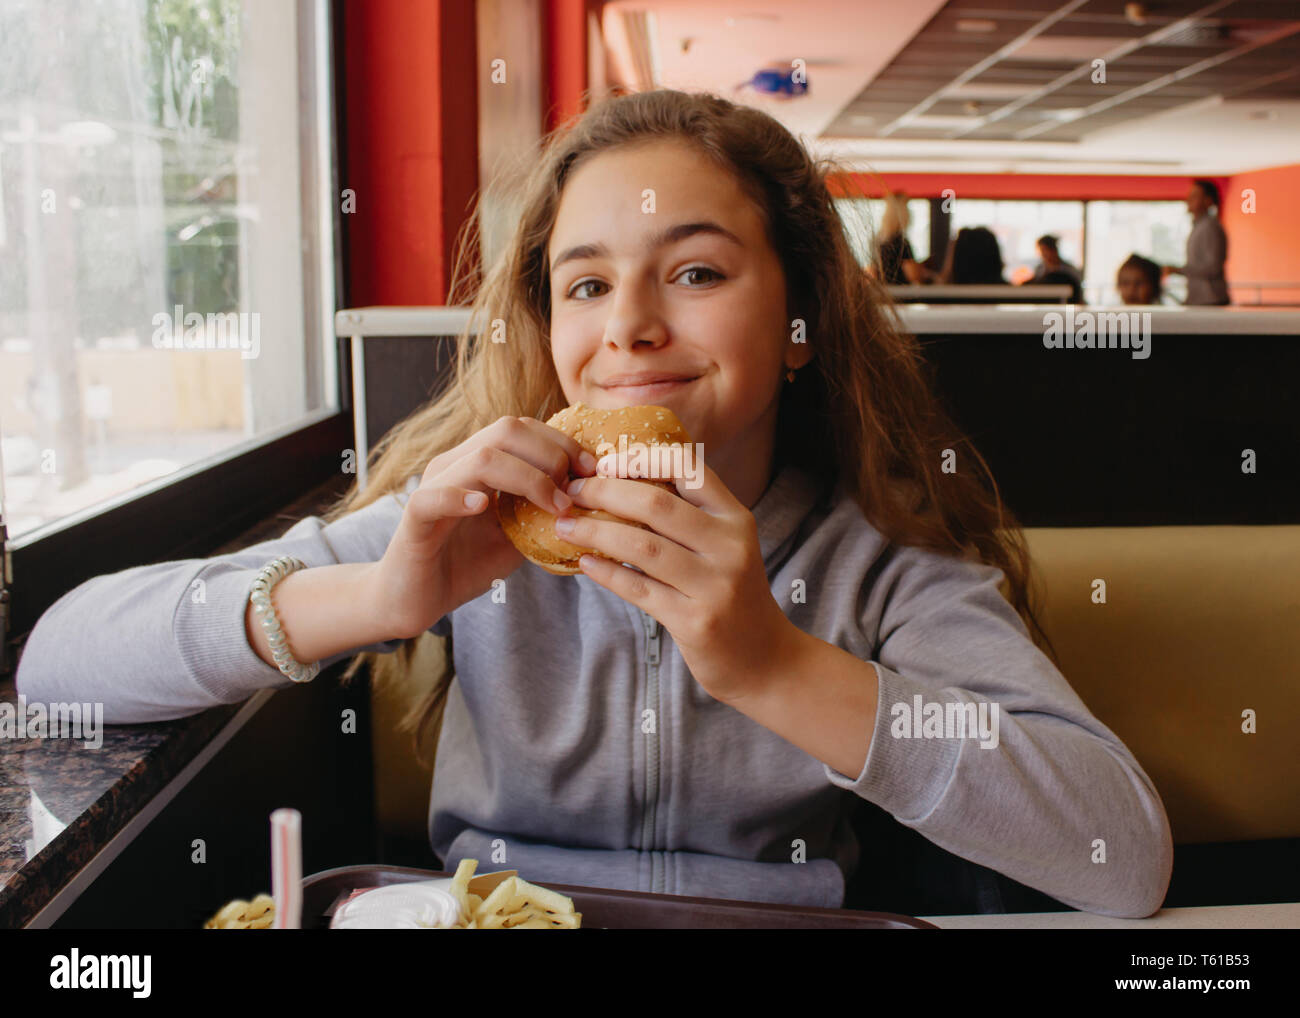 Pretty young teen girl with an appetite eating hamburger in a cafe Stock Photo